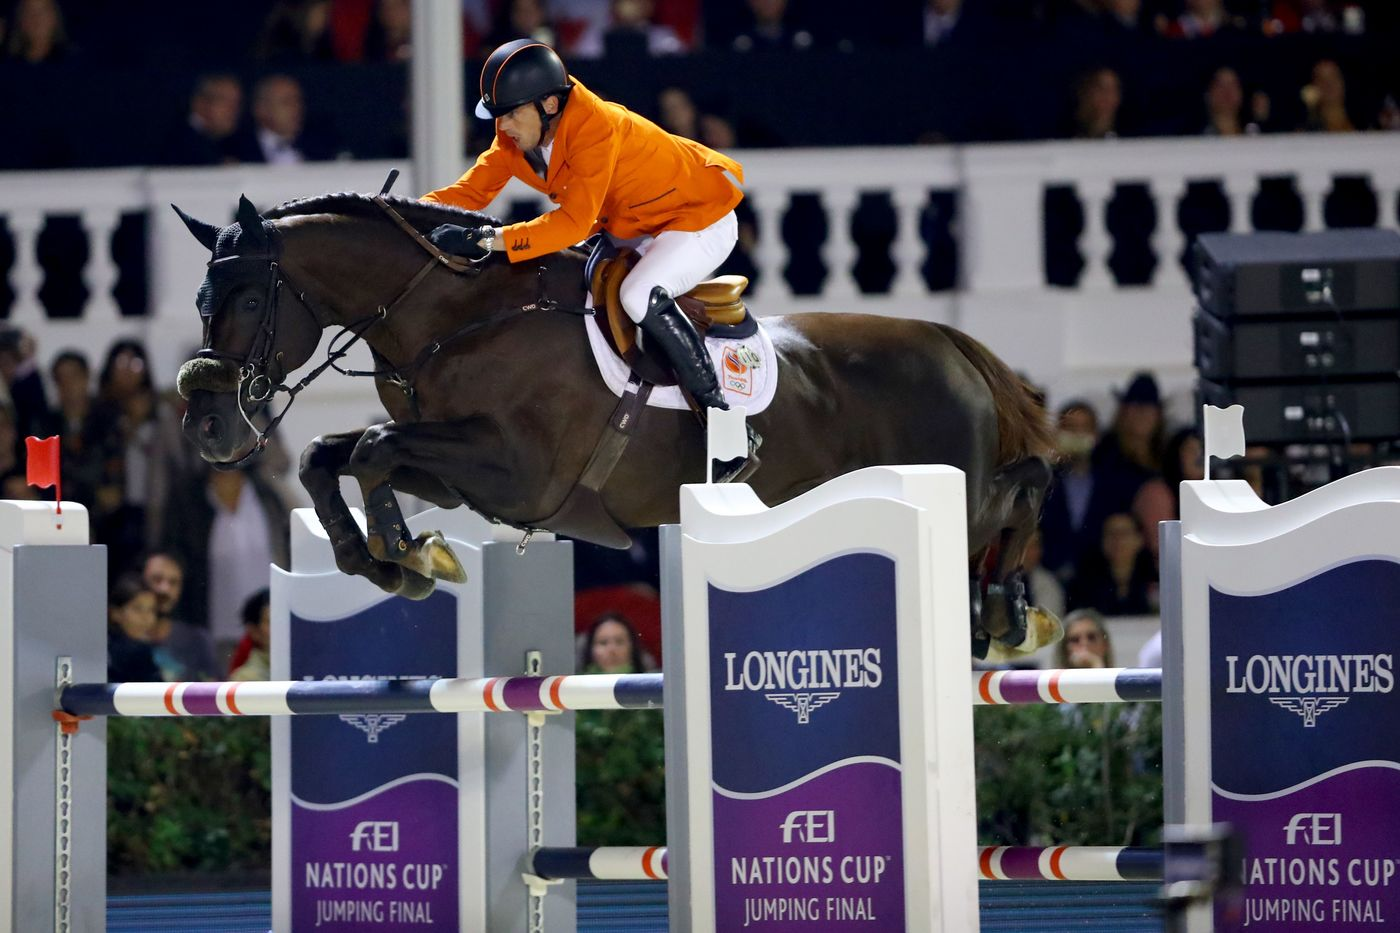 Longines Show Jumping Event: Team Netherlands claimed victory at the Longines FEI Nations Cup™ Jumping Final in Barcelona  1